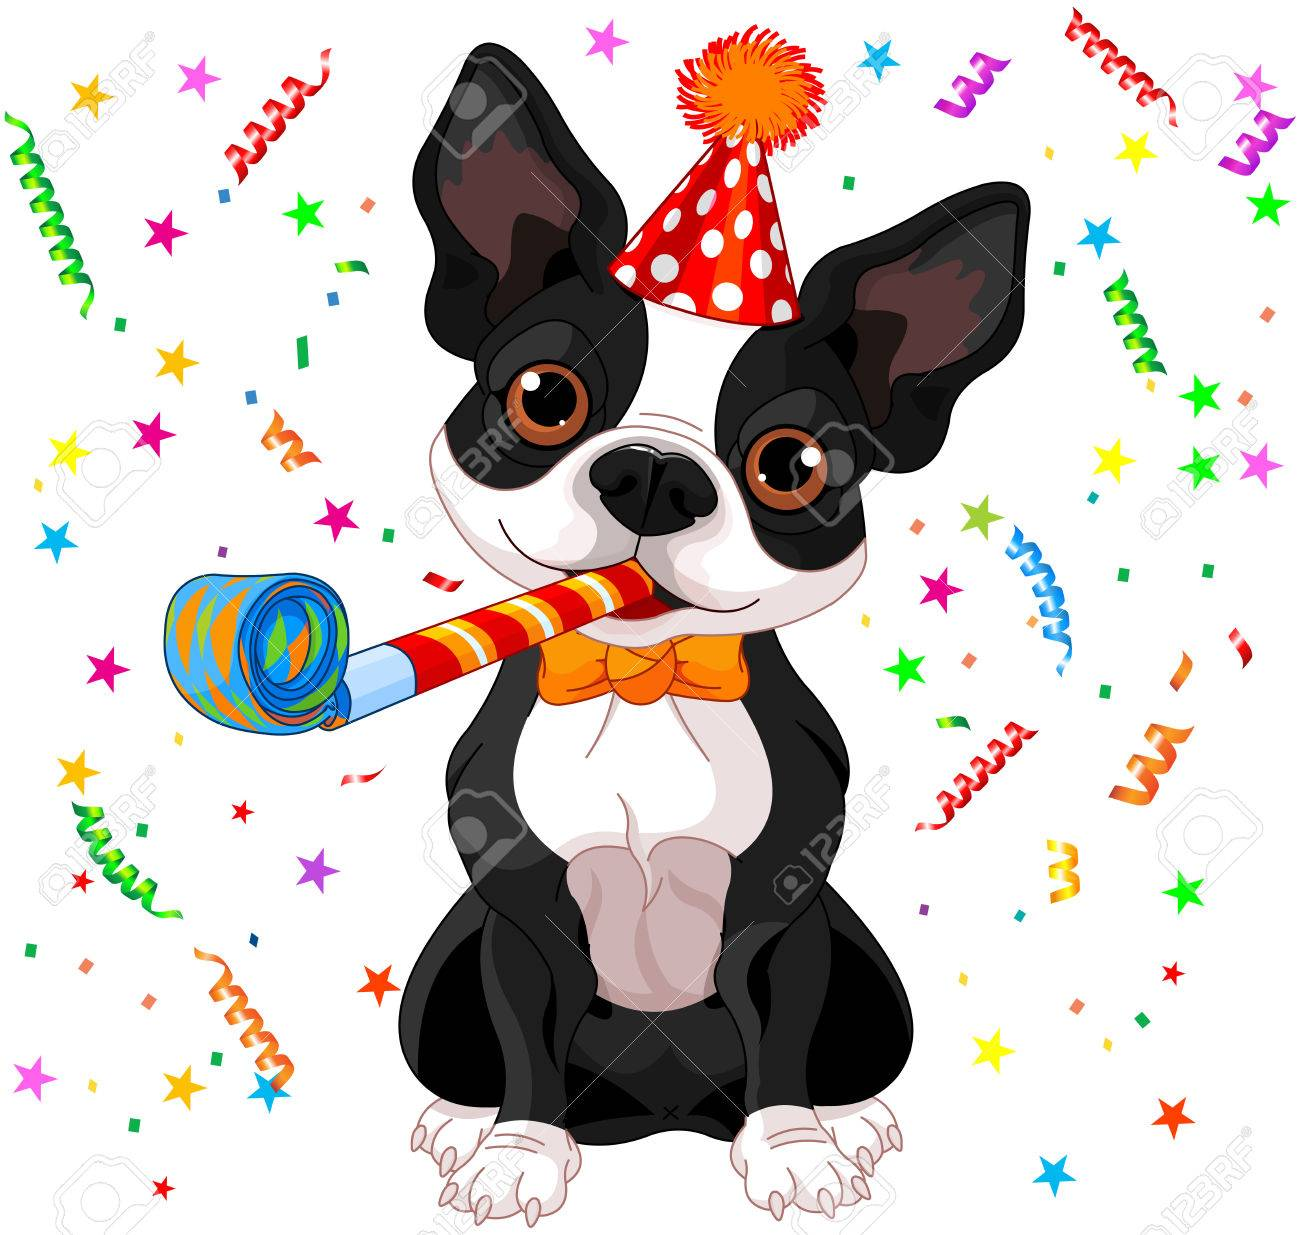 Passer au harnais? - Page 8 35588778-illustration-of-cute-boston-terrier-celebrating